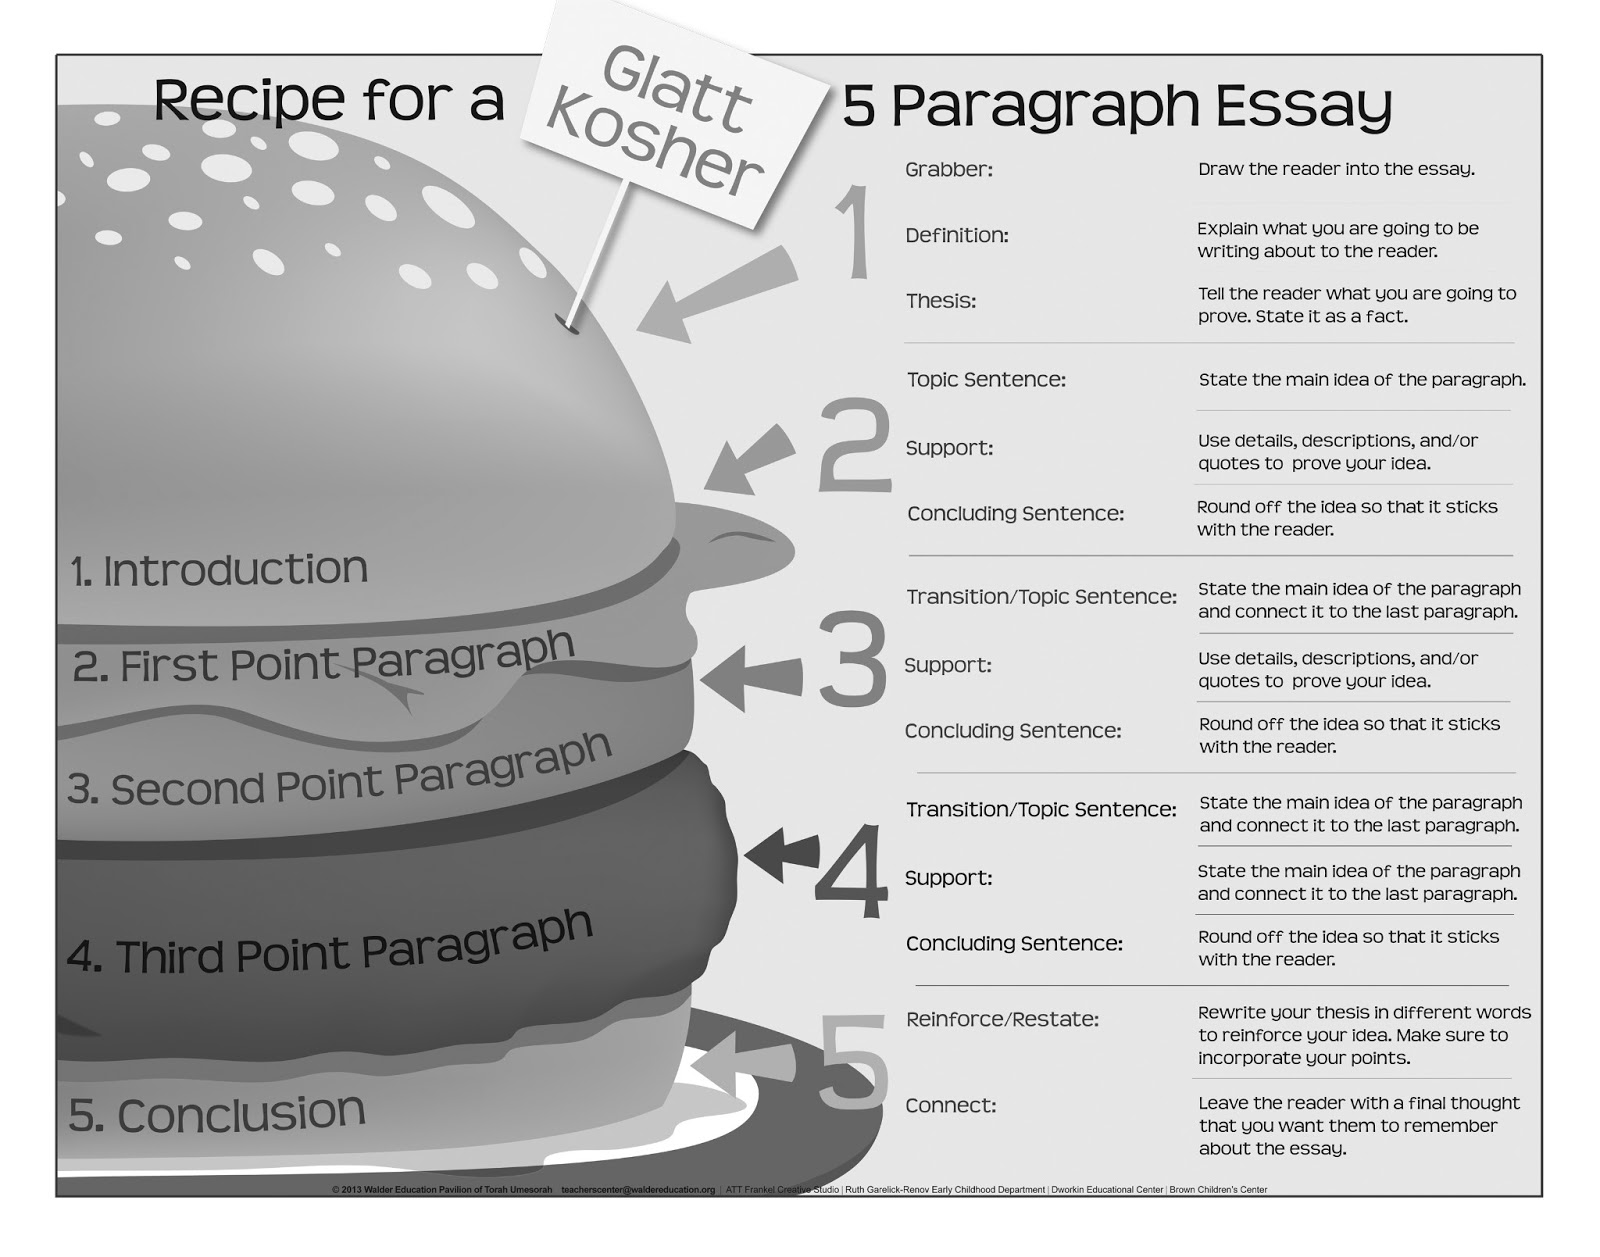 Concluding the three five paragraph essay